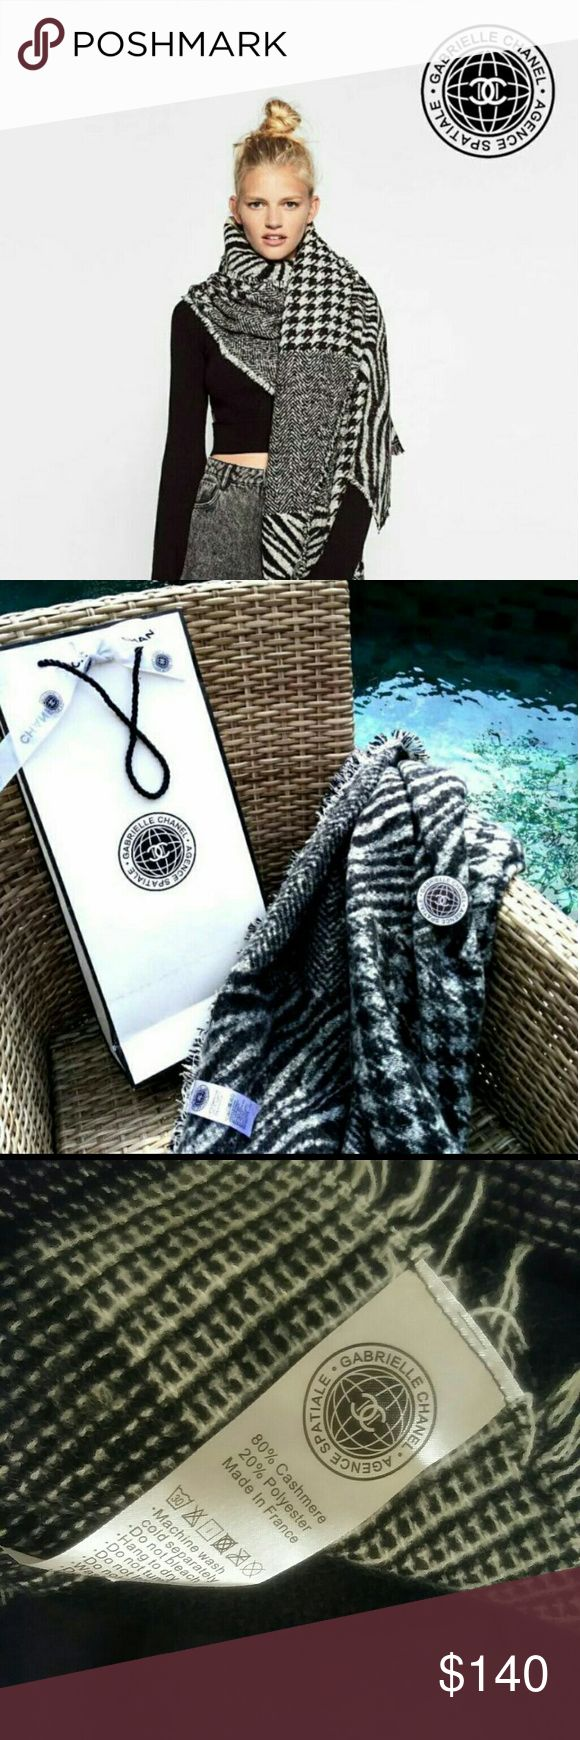 Chanel Cashmere Scarf VIP Gift New with Box **************Brand New & 100% Authentic********************   *Not available for sale in boutiques. This is a VIP gift item from Chanel and does NOT include with hologram sticker, serial number, dust bag or box. Size 68 x 52  This is a gift for customers of Chanel products. It is made for exclusive distribution by Chanel to its customers.  Be advised that VIP gift items do not carry authenticity registration numbers as they are not products sold…